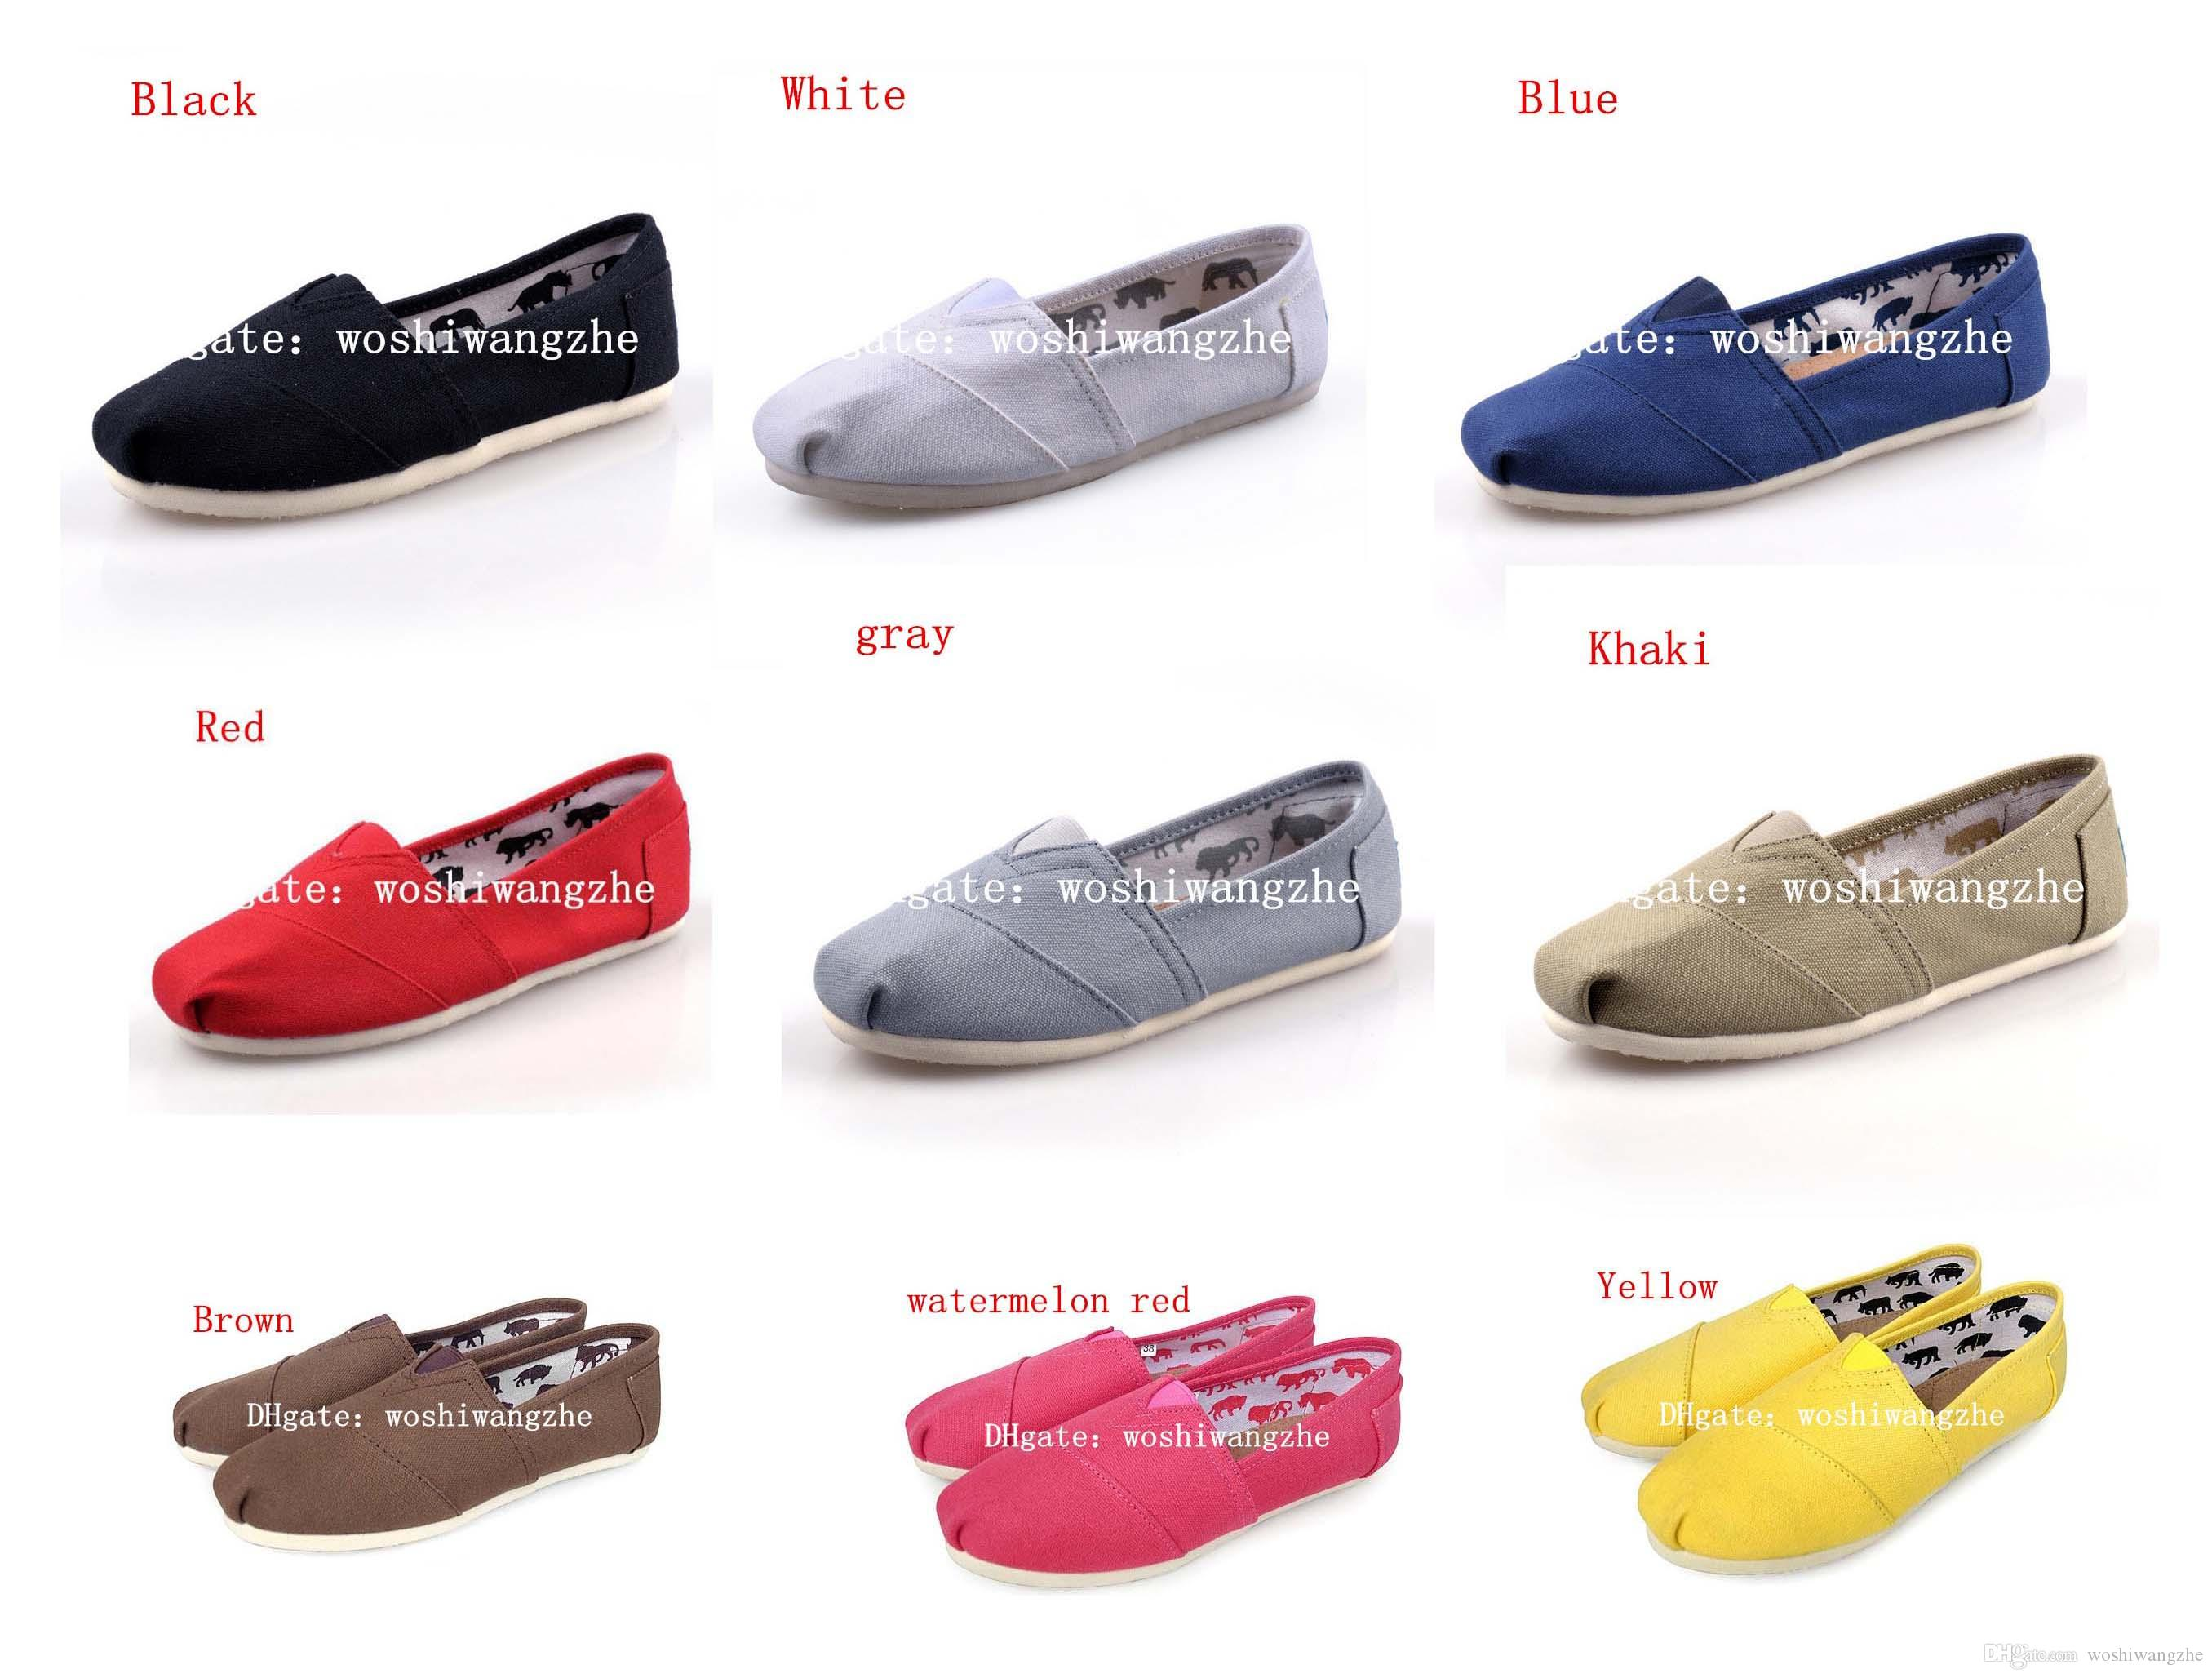 d02a3315cca New Unisex Classic Brand Fashion Women Flats Shoes Sneakers Women And Men  Canvas Shoes Loafers Casual Shoes Espadrilles Size 35 45l Dress Shoes Wedge  Shoes ...